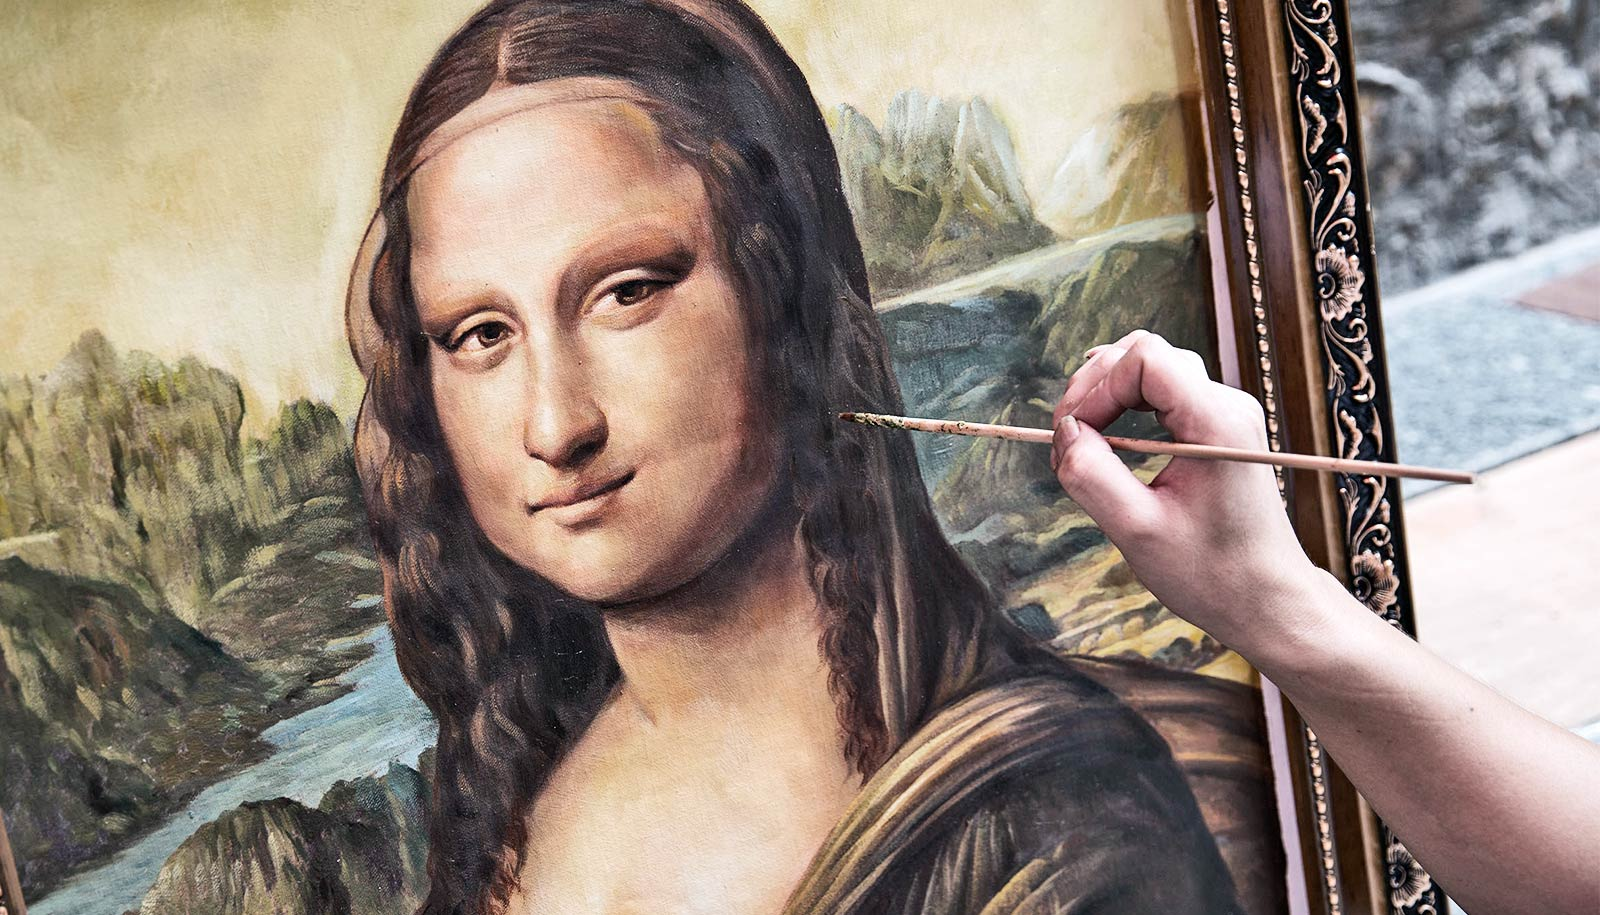 Robot copies Mona Lisa sketch just by looking at it